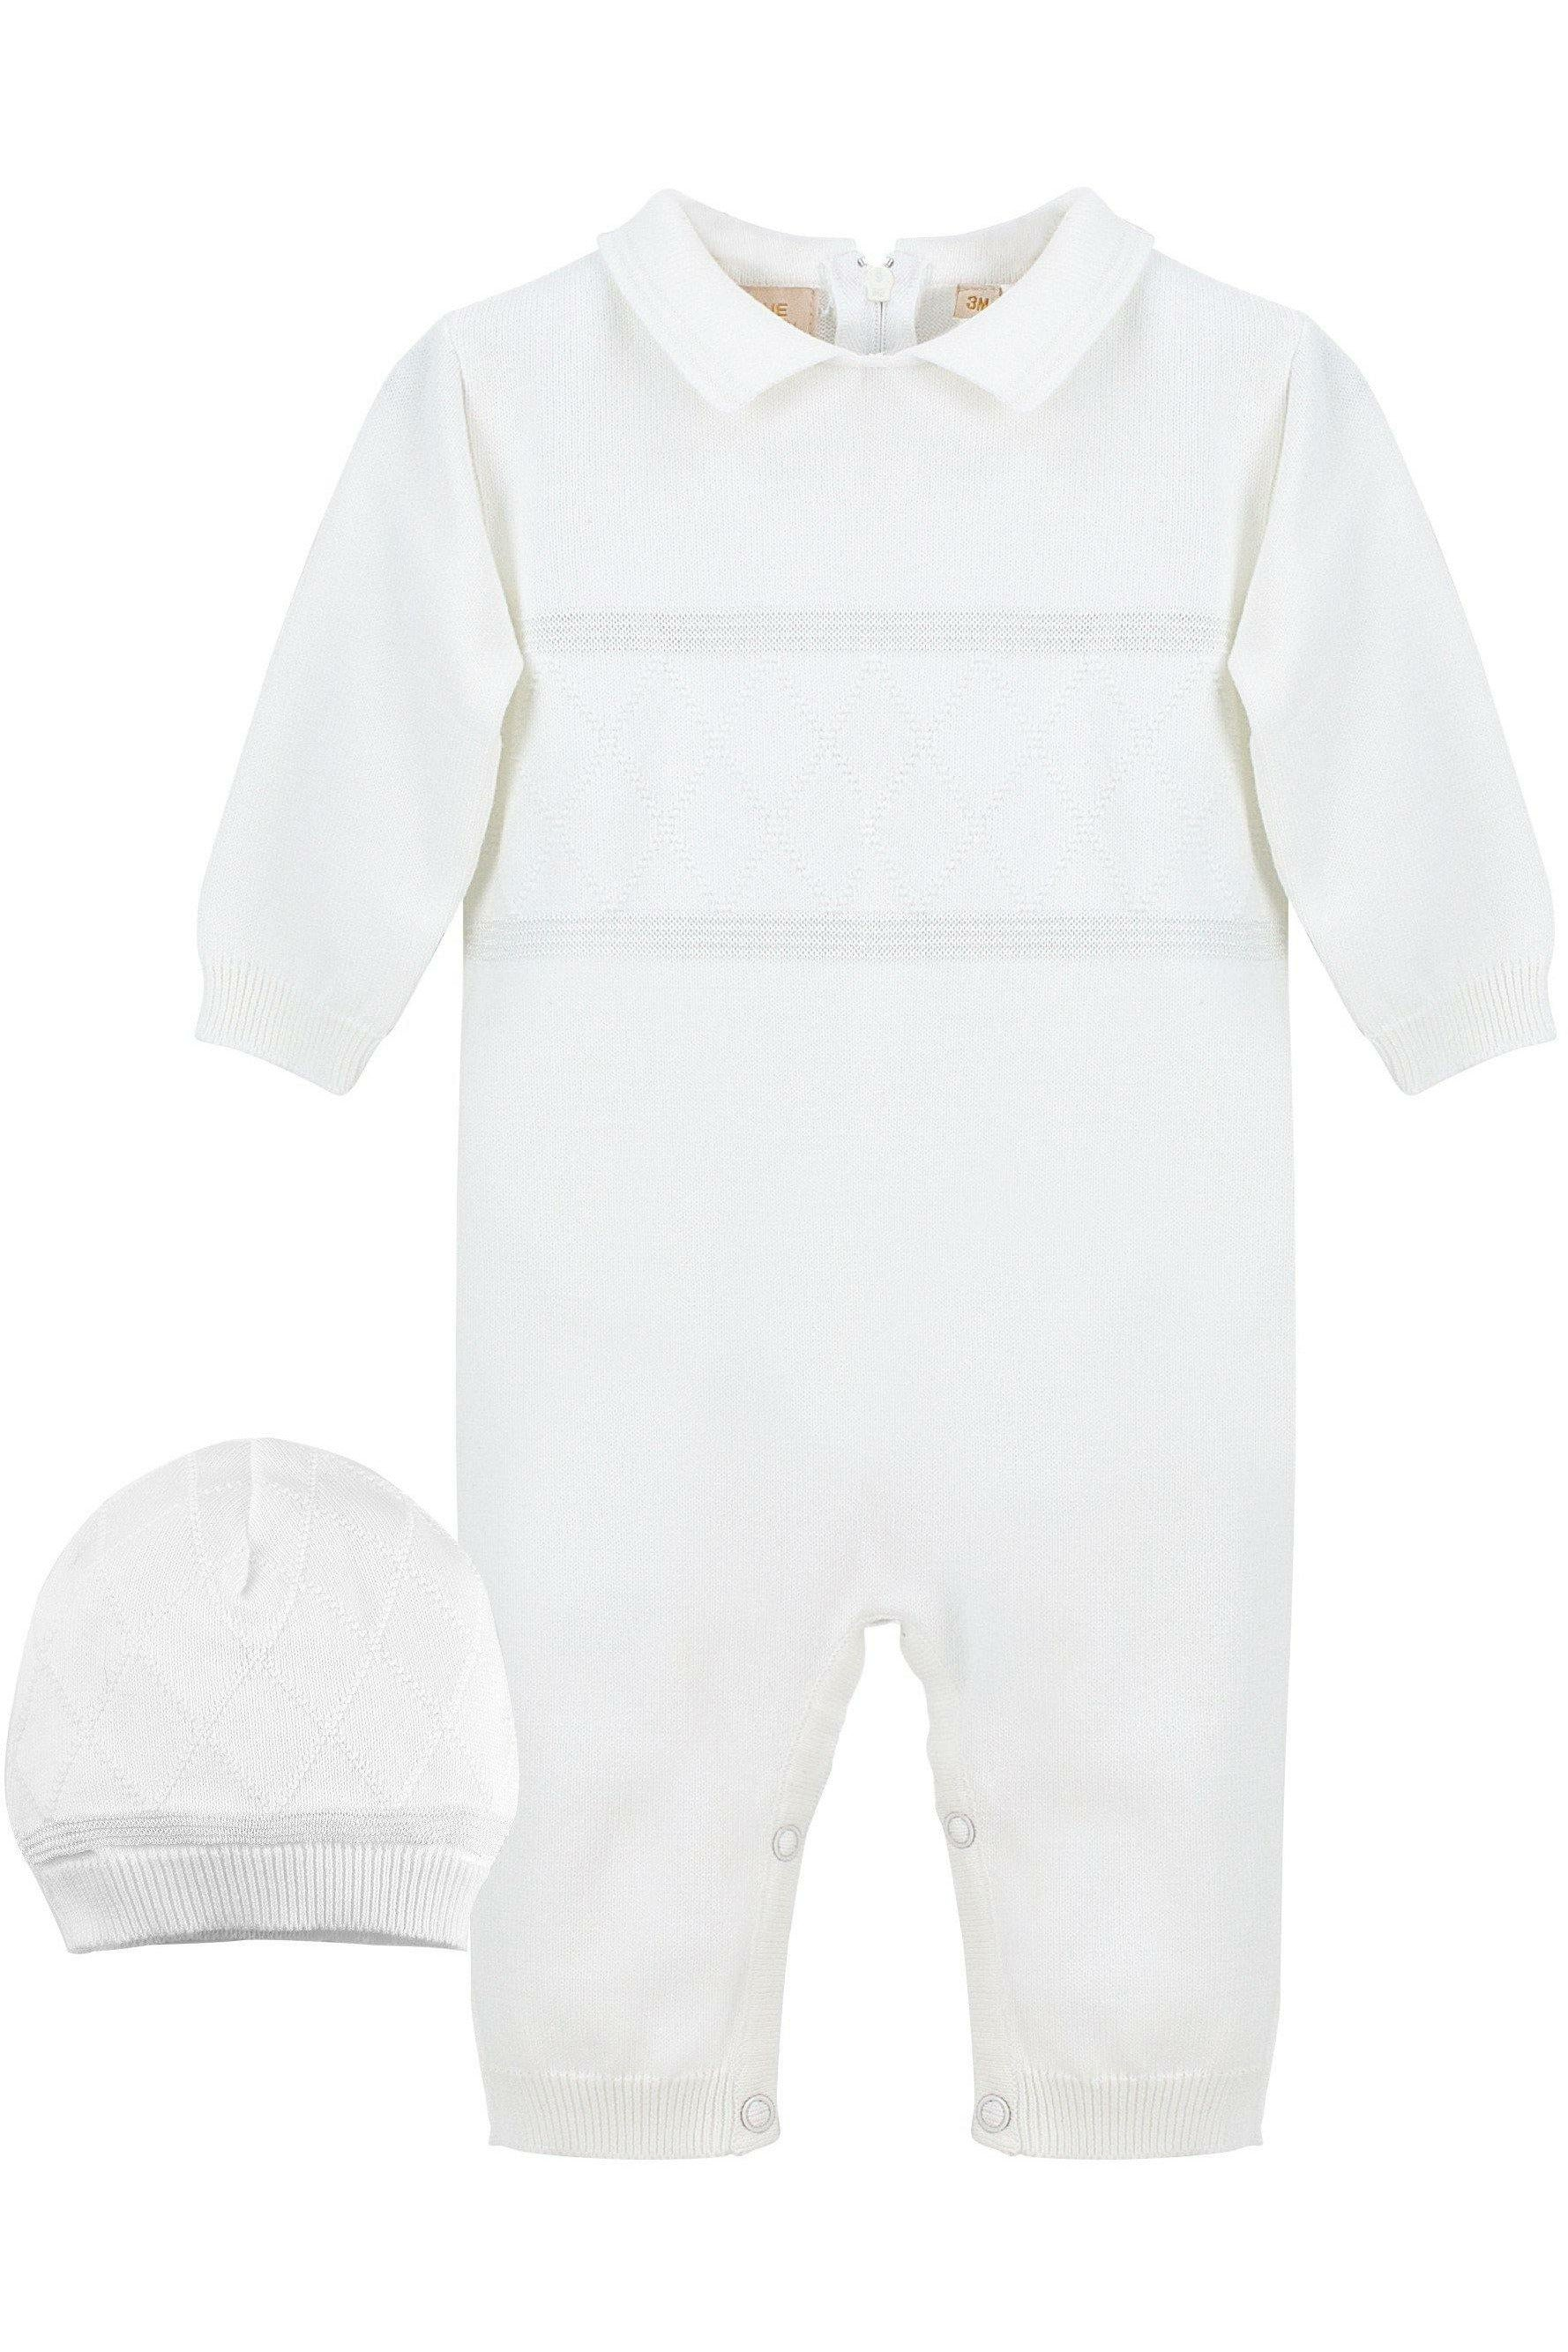 0769ba898 Baby Boys Christening Outfit - Coverall Diamond Stitching with Hat ...